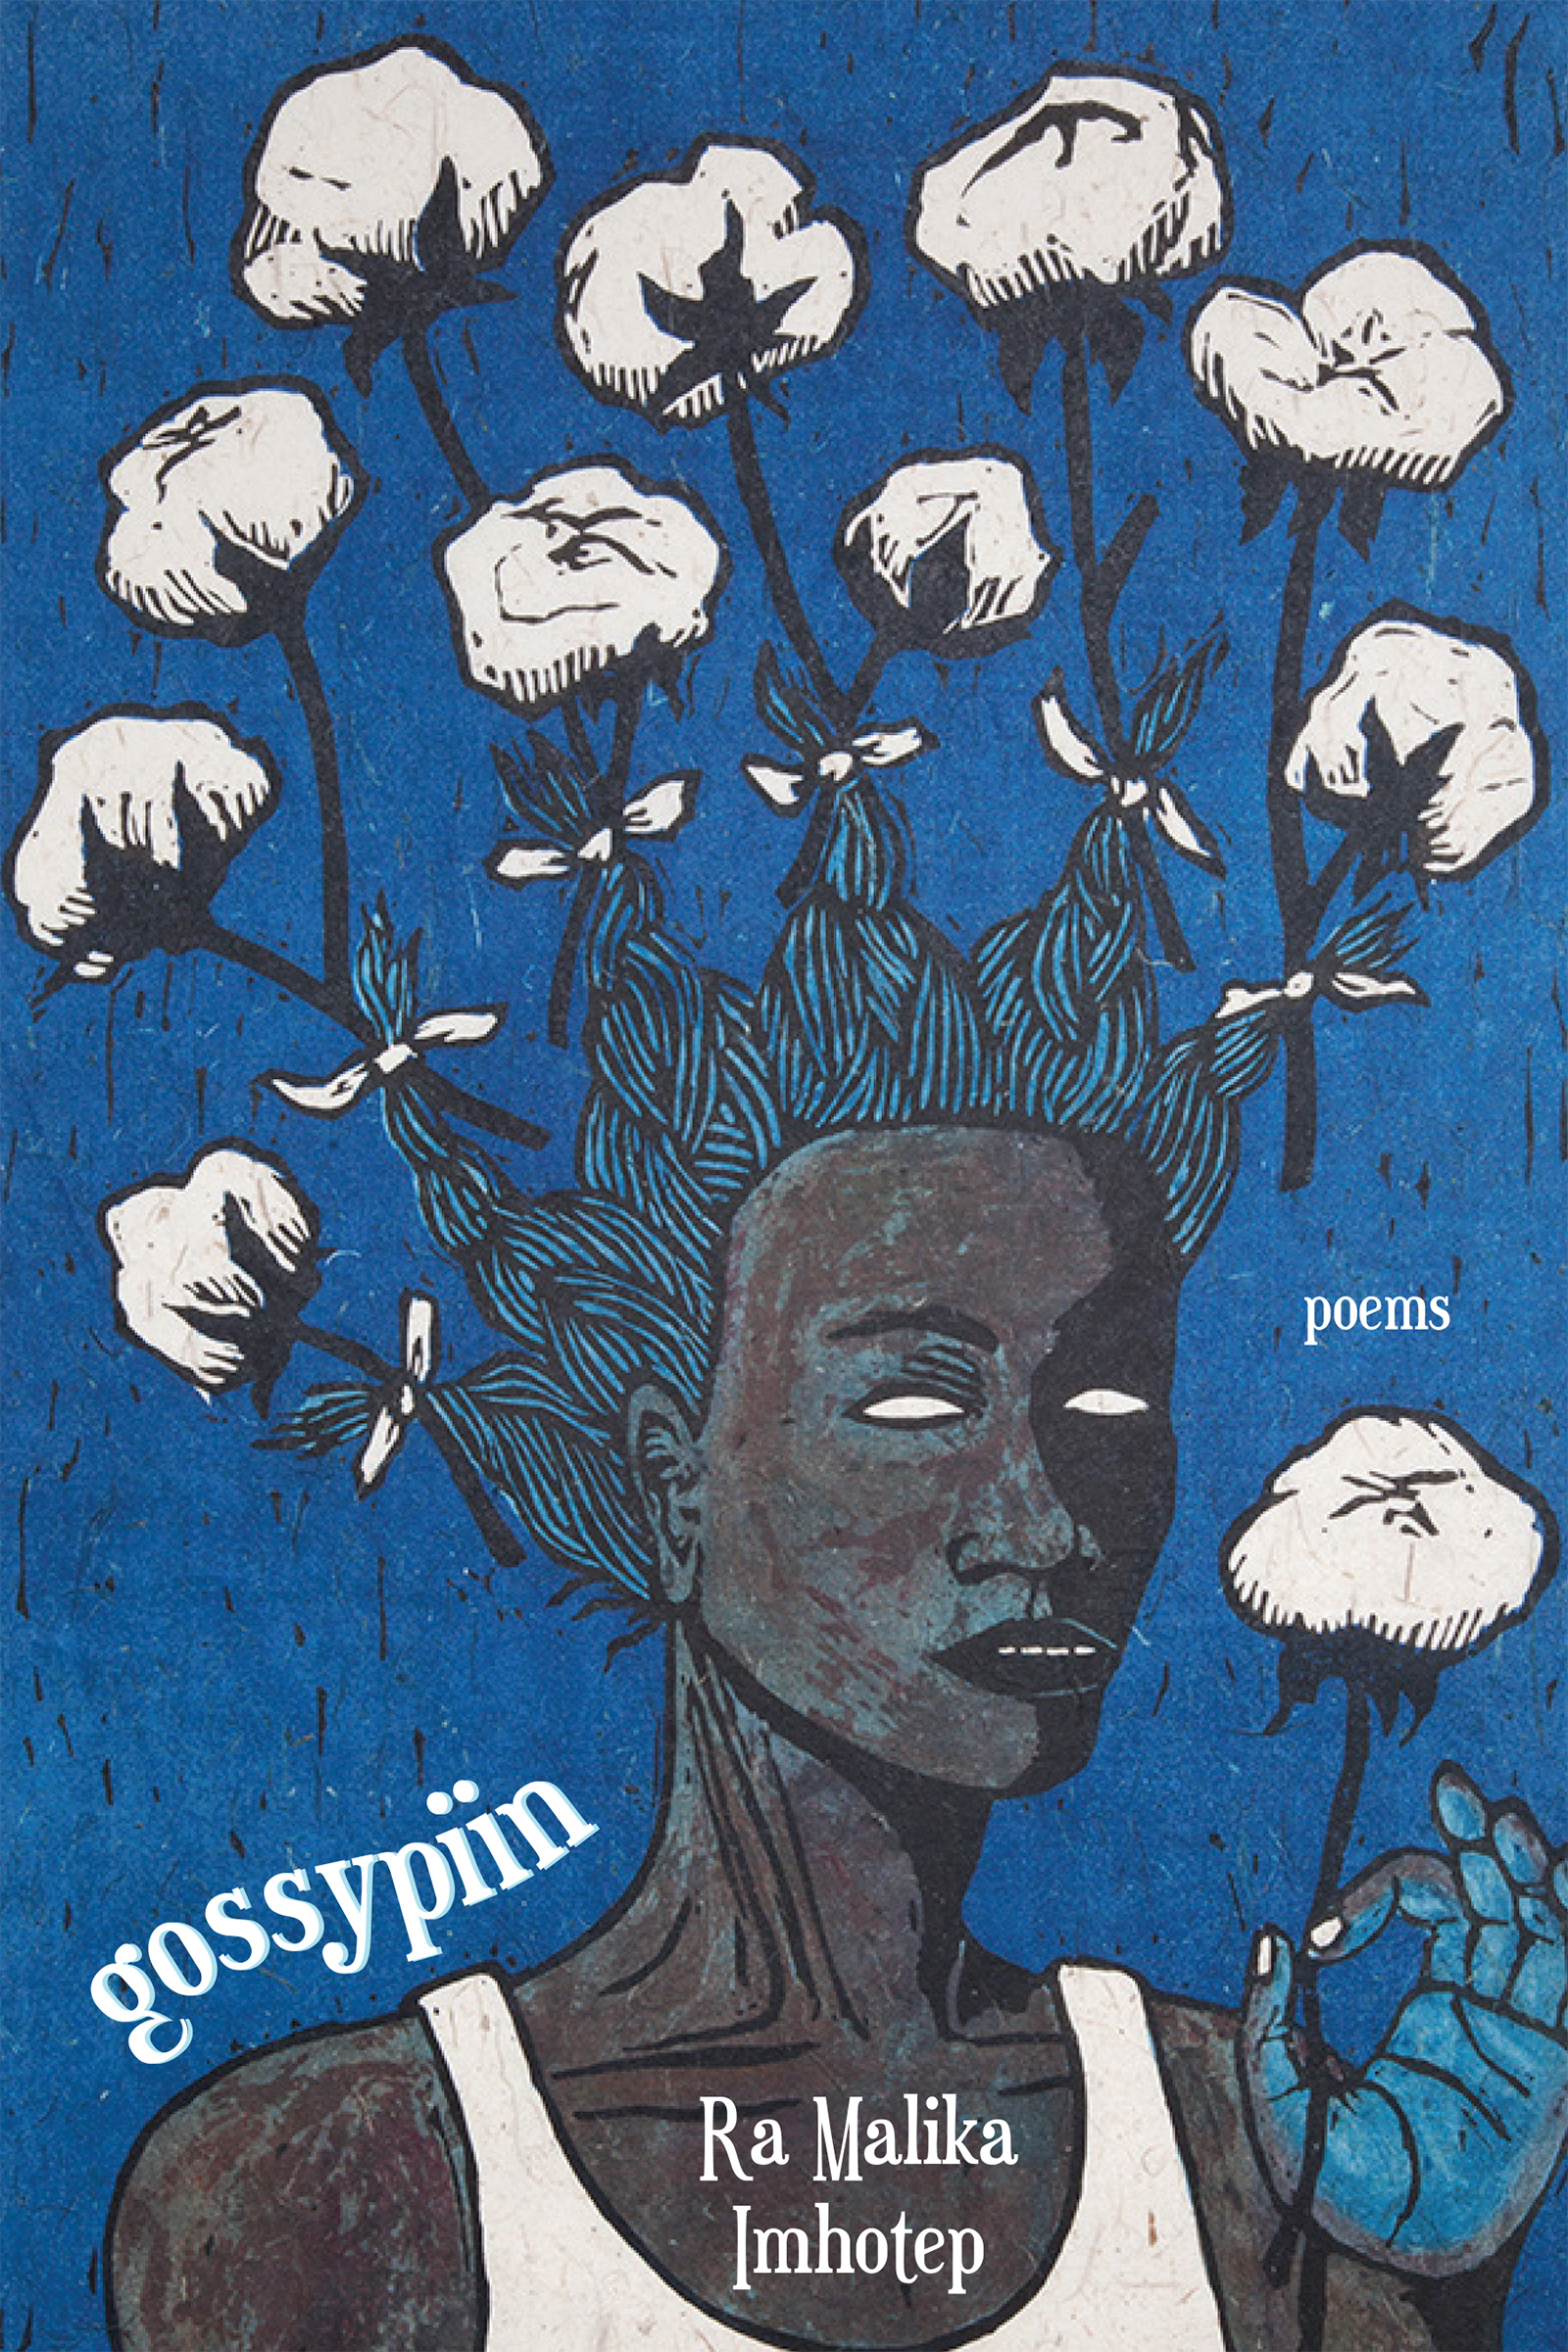 Graphic art piece by Alison Saar depicting a Black woman with cotton branch hair, set to a dark blue background, with white text introducing GOSSYPIIN, poems by Ra Malika Imhotep